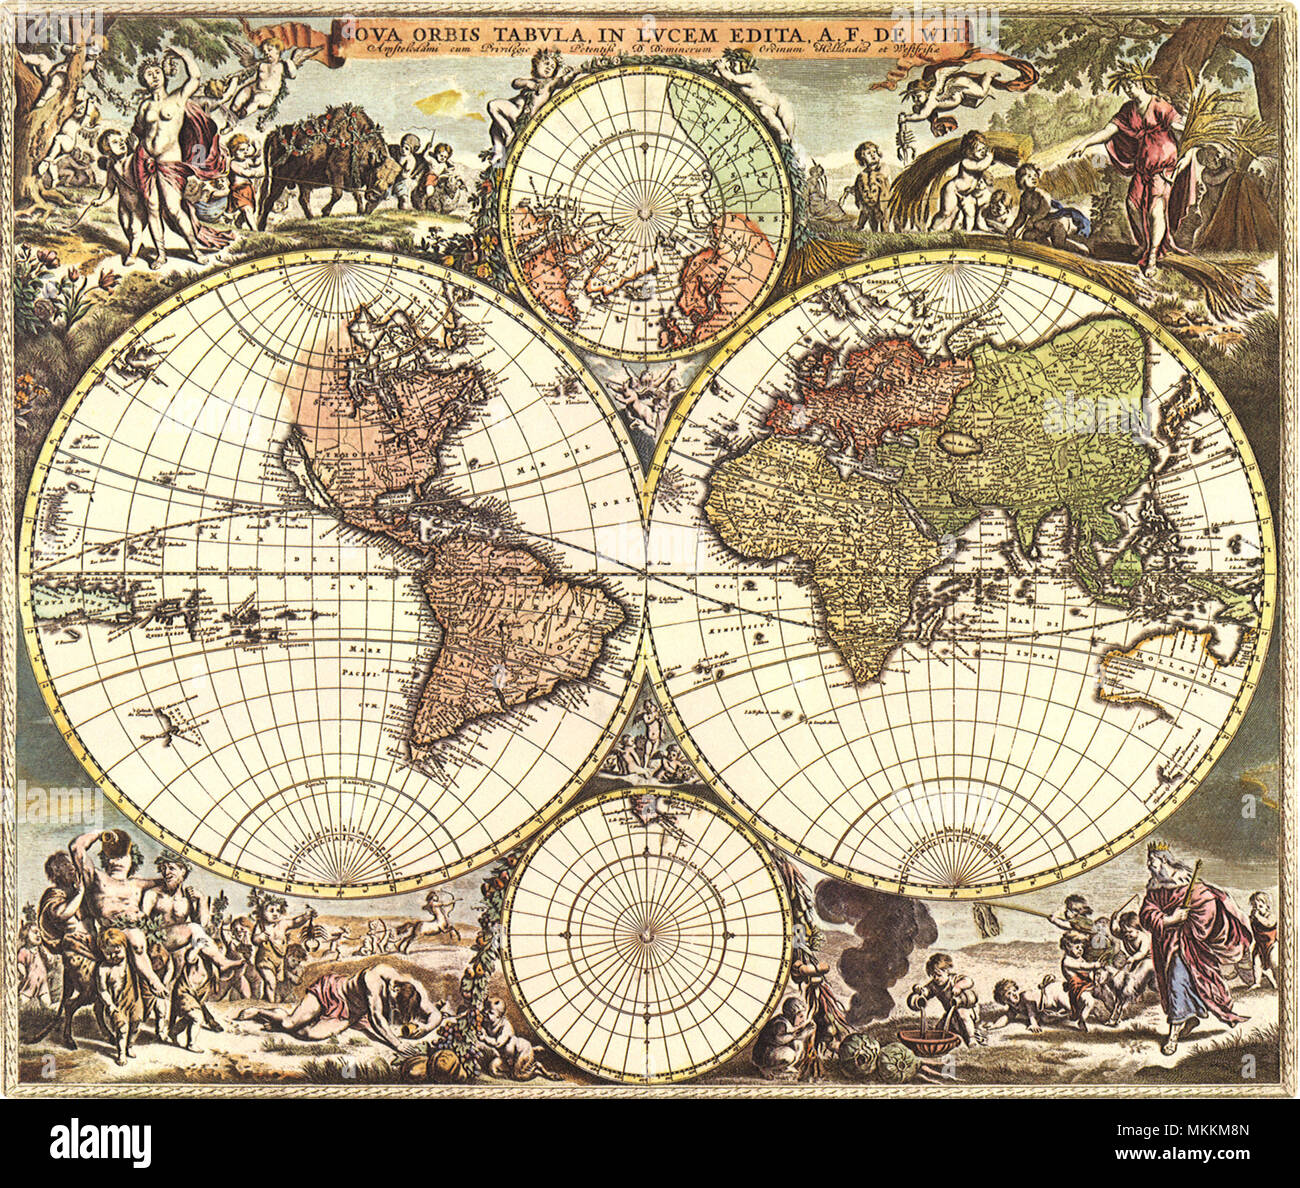 Old World Map 1688 - Stock Image